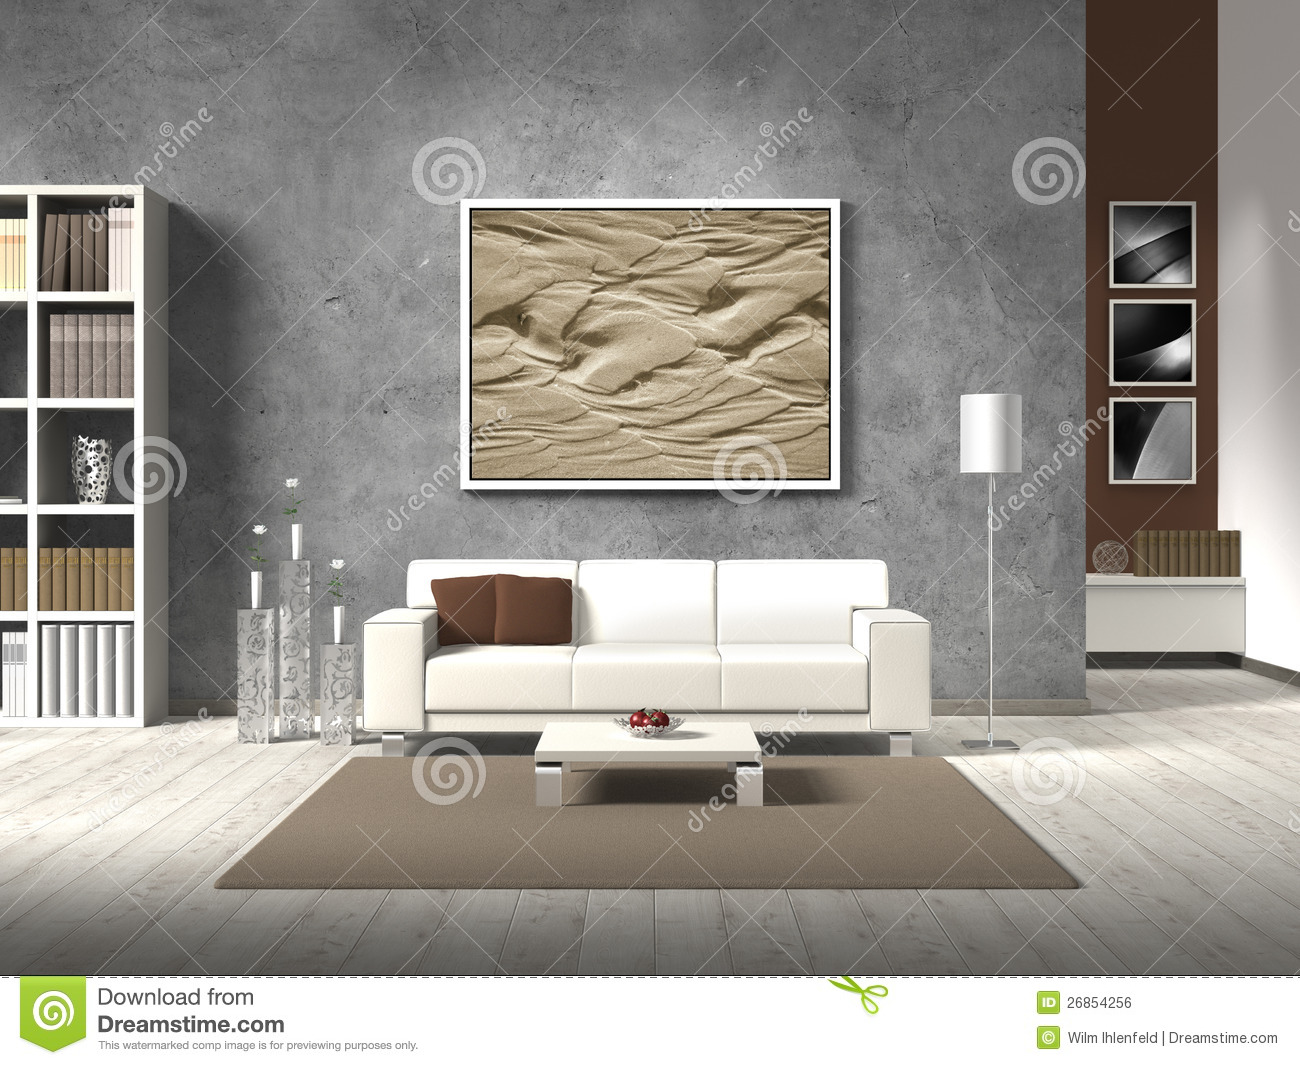 Modern Living Room In Natural Colors Royalty Free Stock Image - Image: 26854256